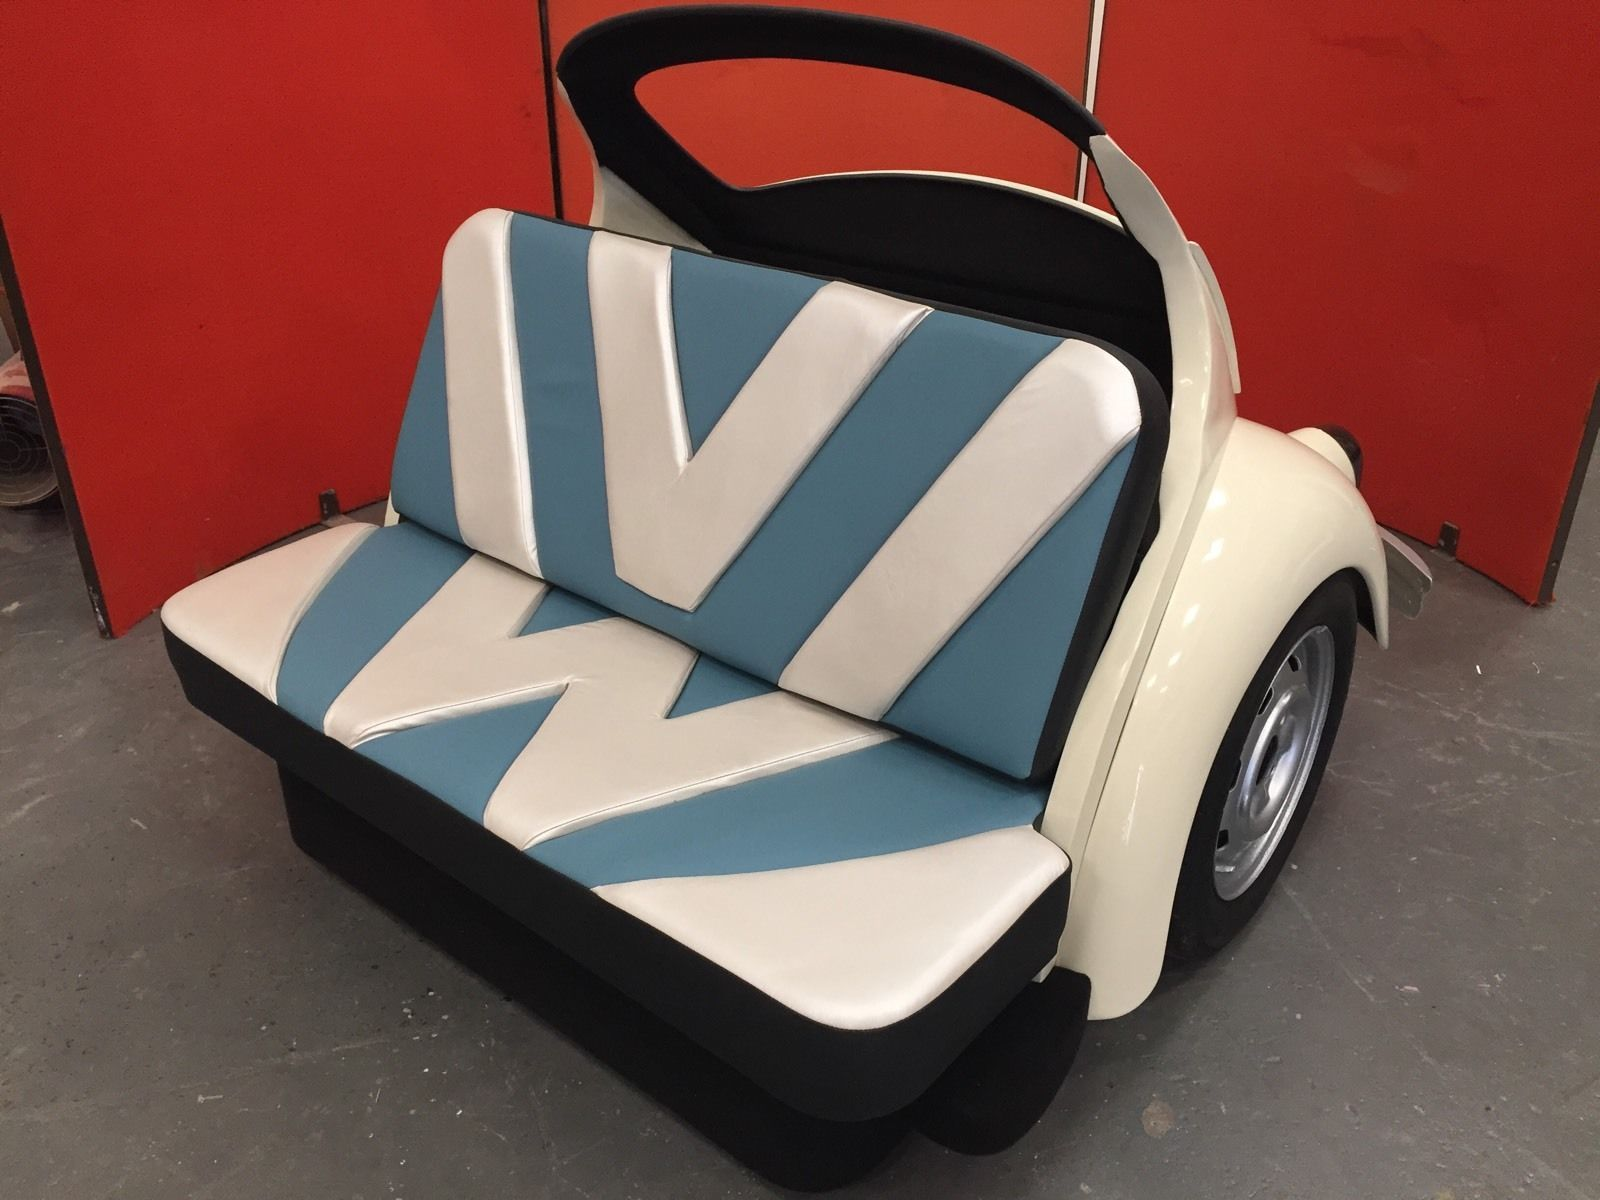 Classic vw beetle sofa beetle booth cool couch vw bug seat for Mobilia uno co wll